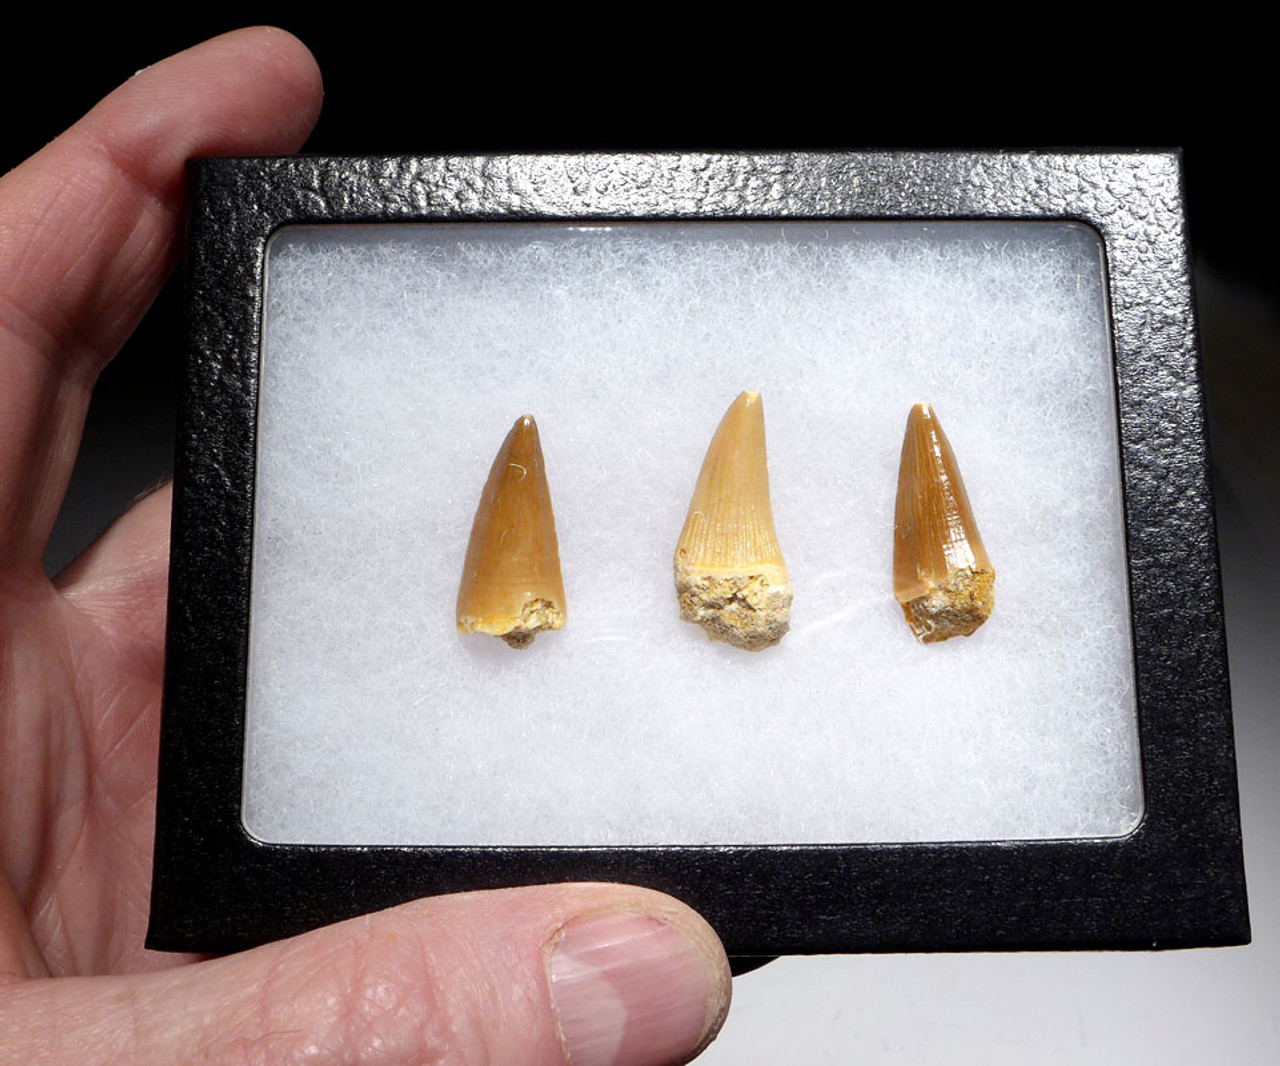 THREE MOSASAUR FOSSIL TEETH FROM A HALISAURUS MARINE REPTILE *DT1-133